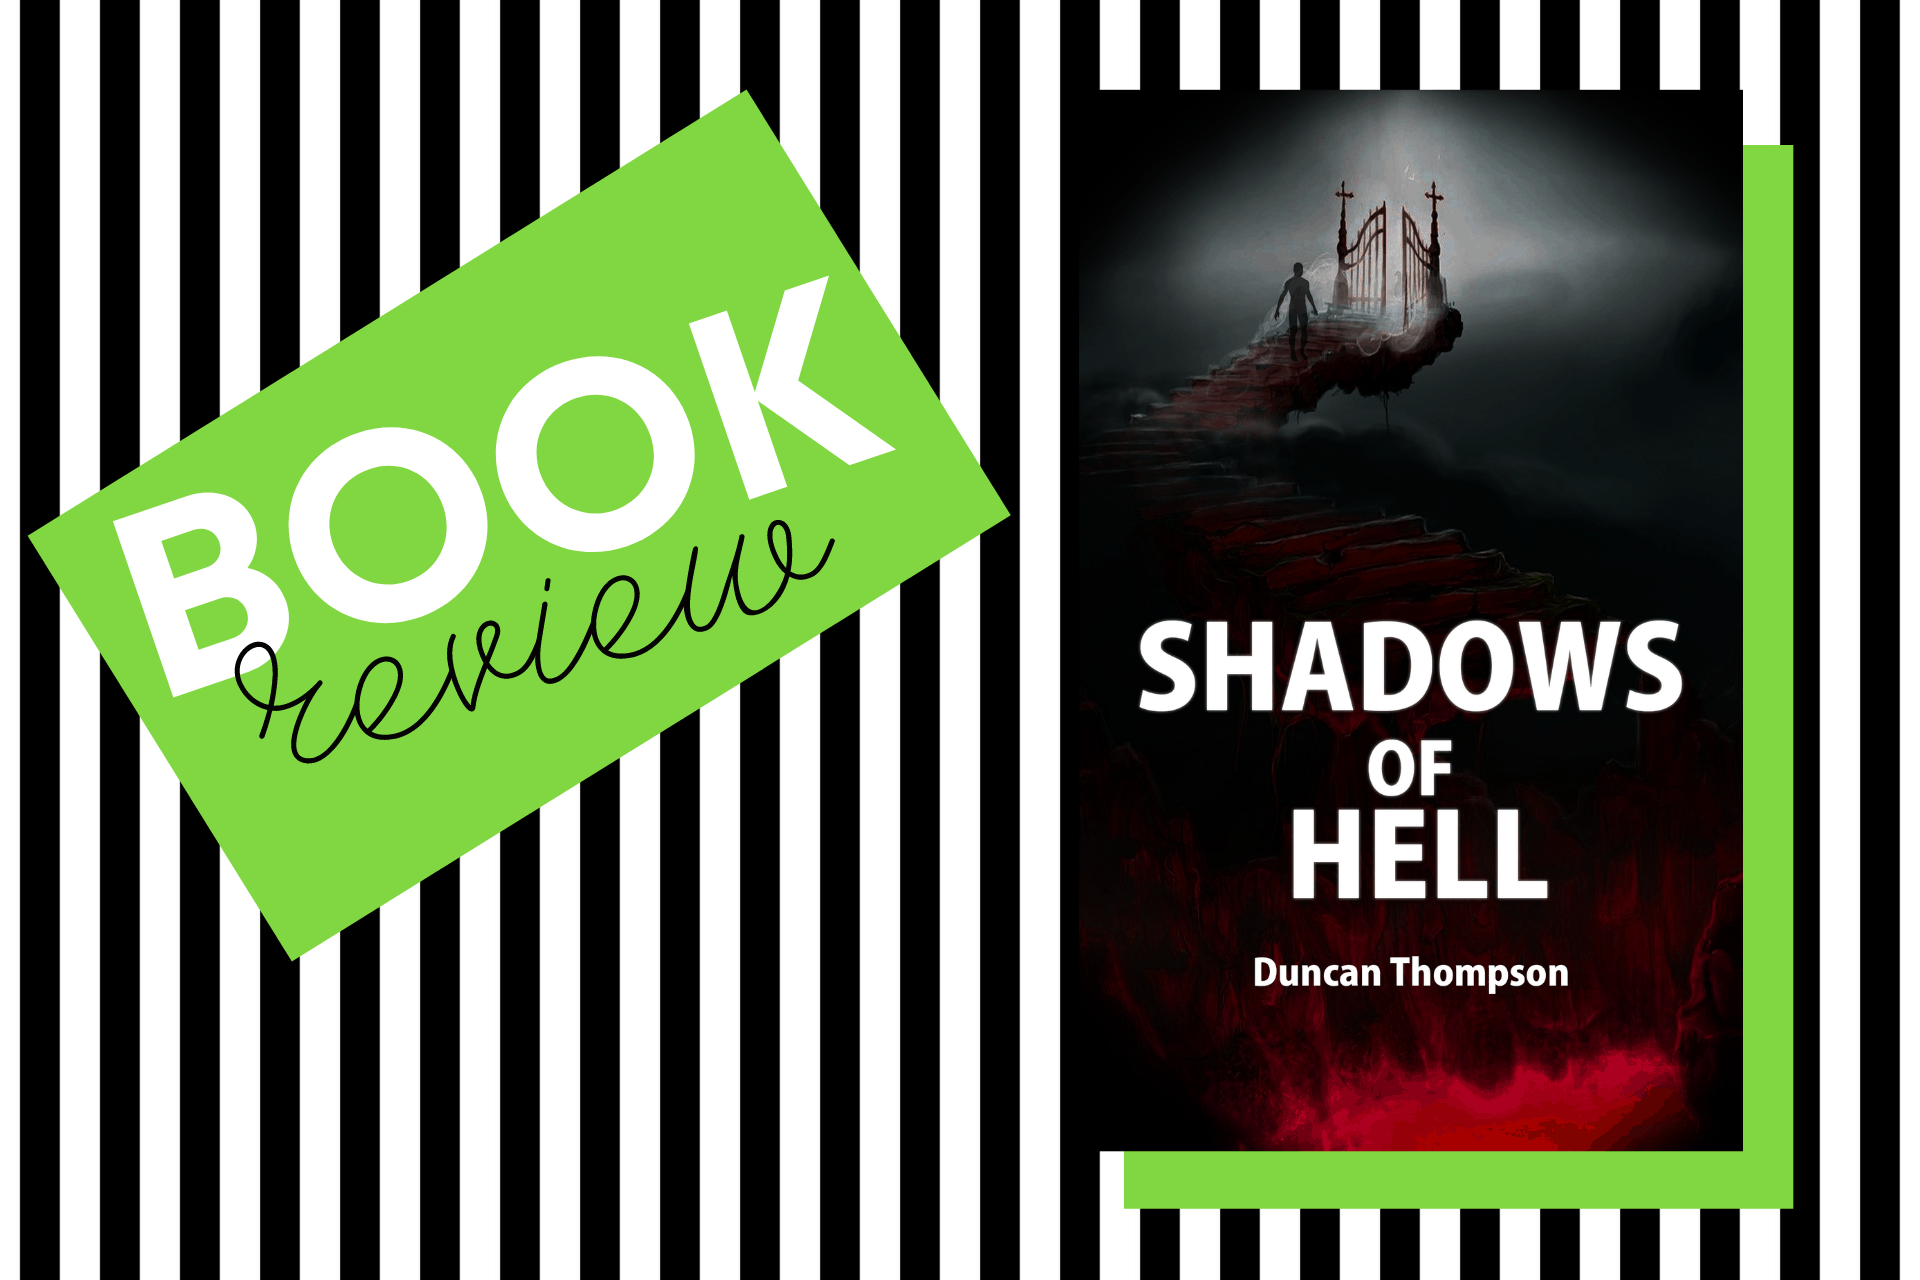 The cover of Shadows of Hell by Duncan Thompson